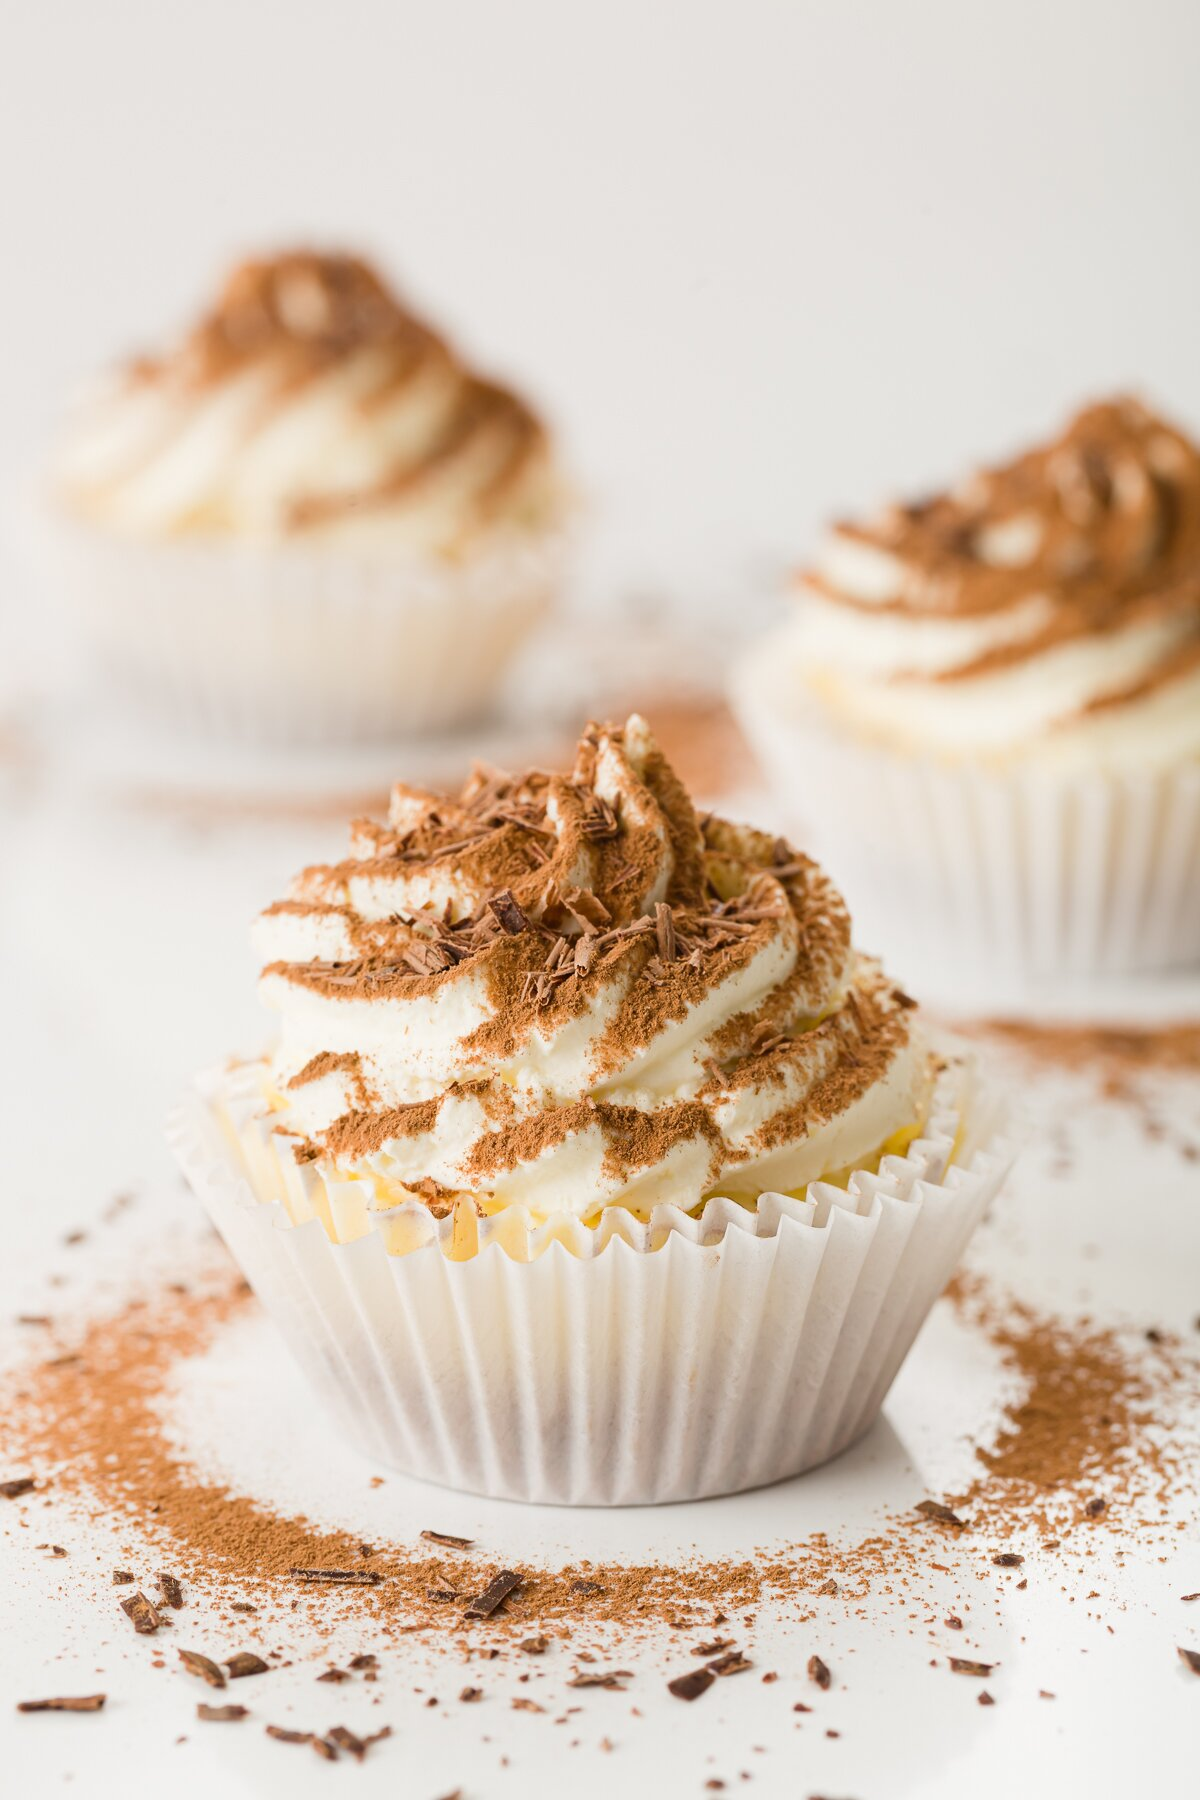 tight shot of a tiramisu cupcake with two others in the background